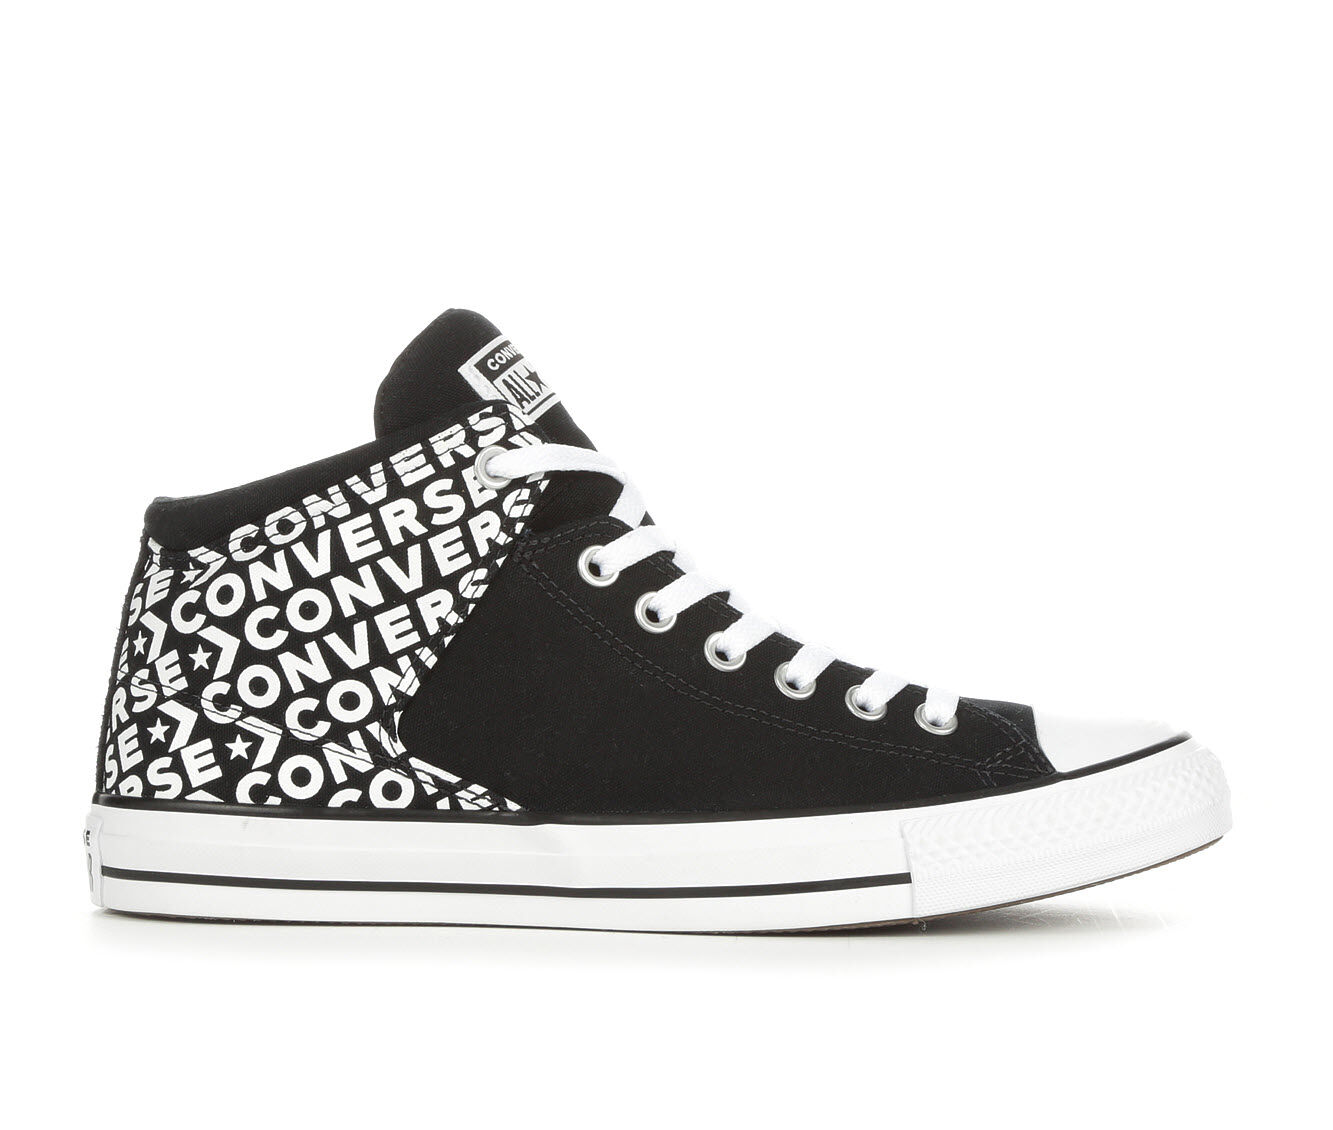 Men's Converse Chuck Taylor All Star Hi St Wordmark 2.0 High-Top Sneakers Black/White